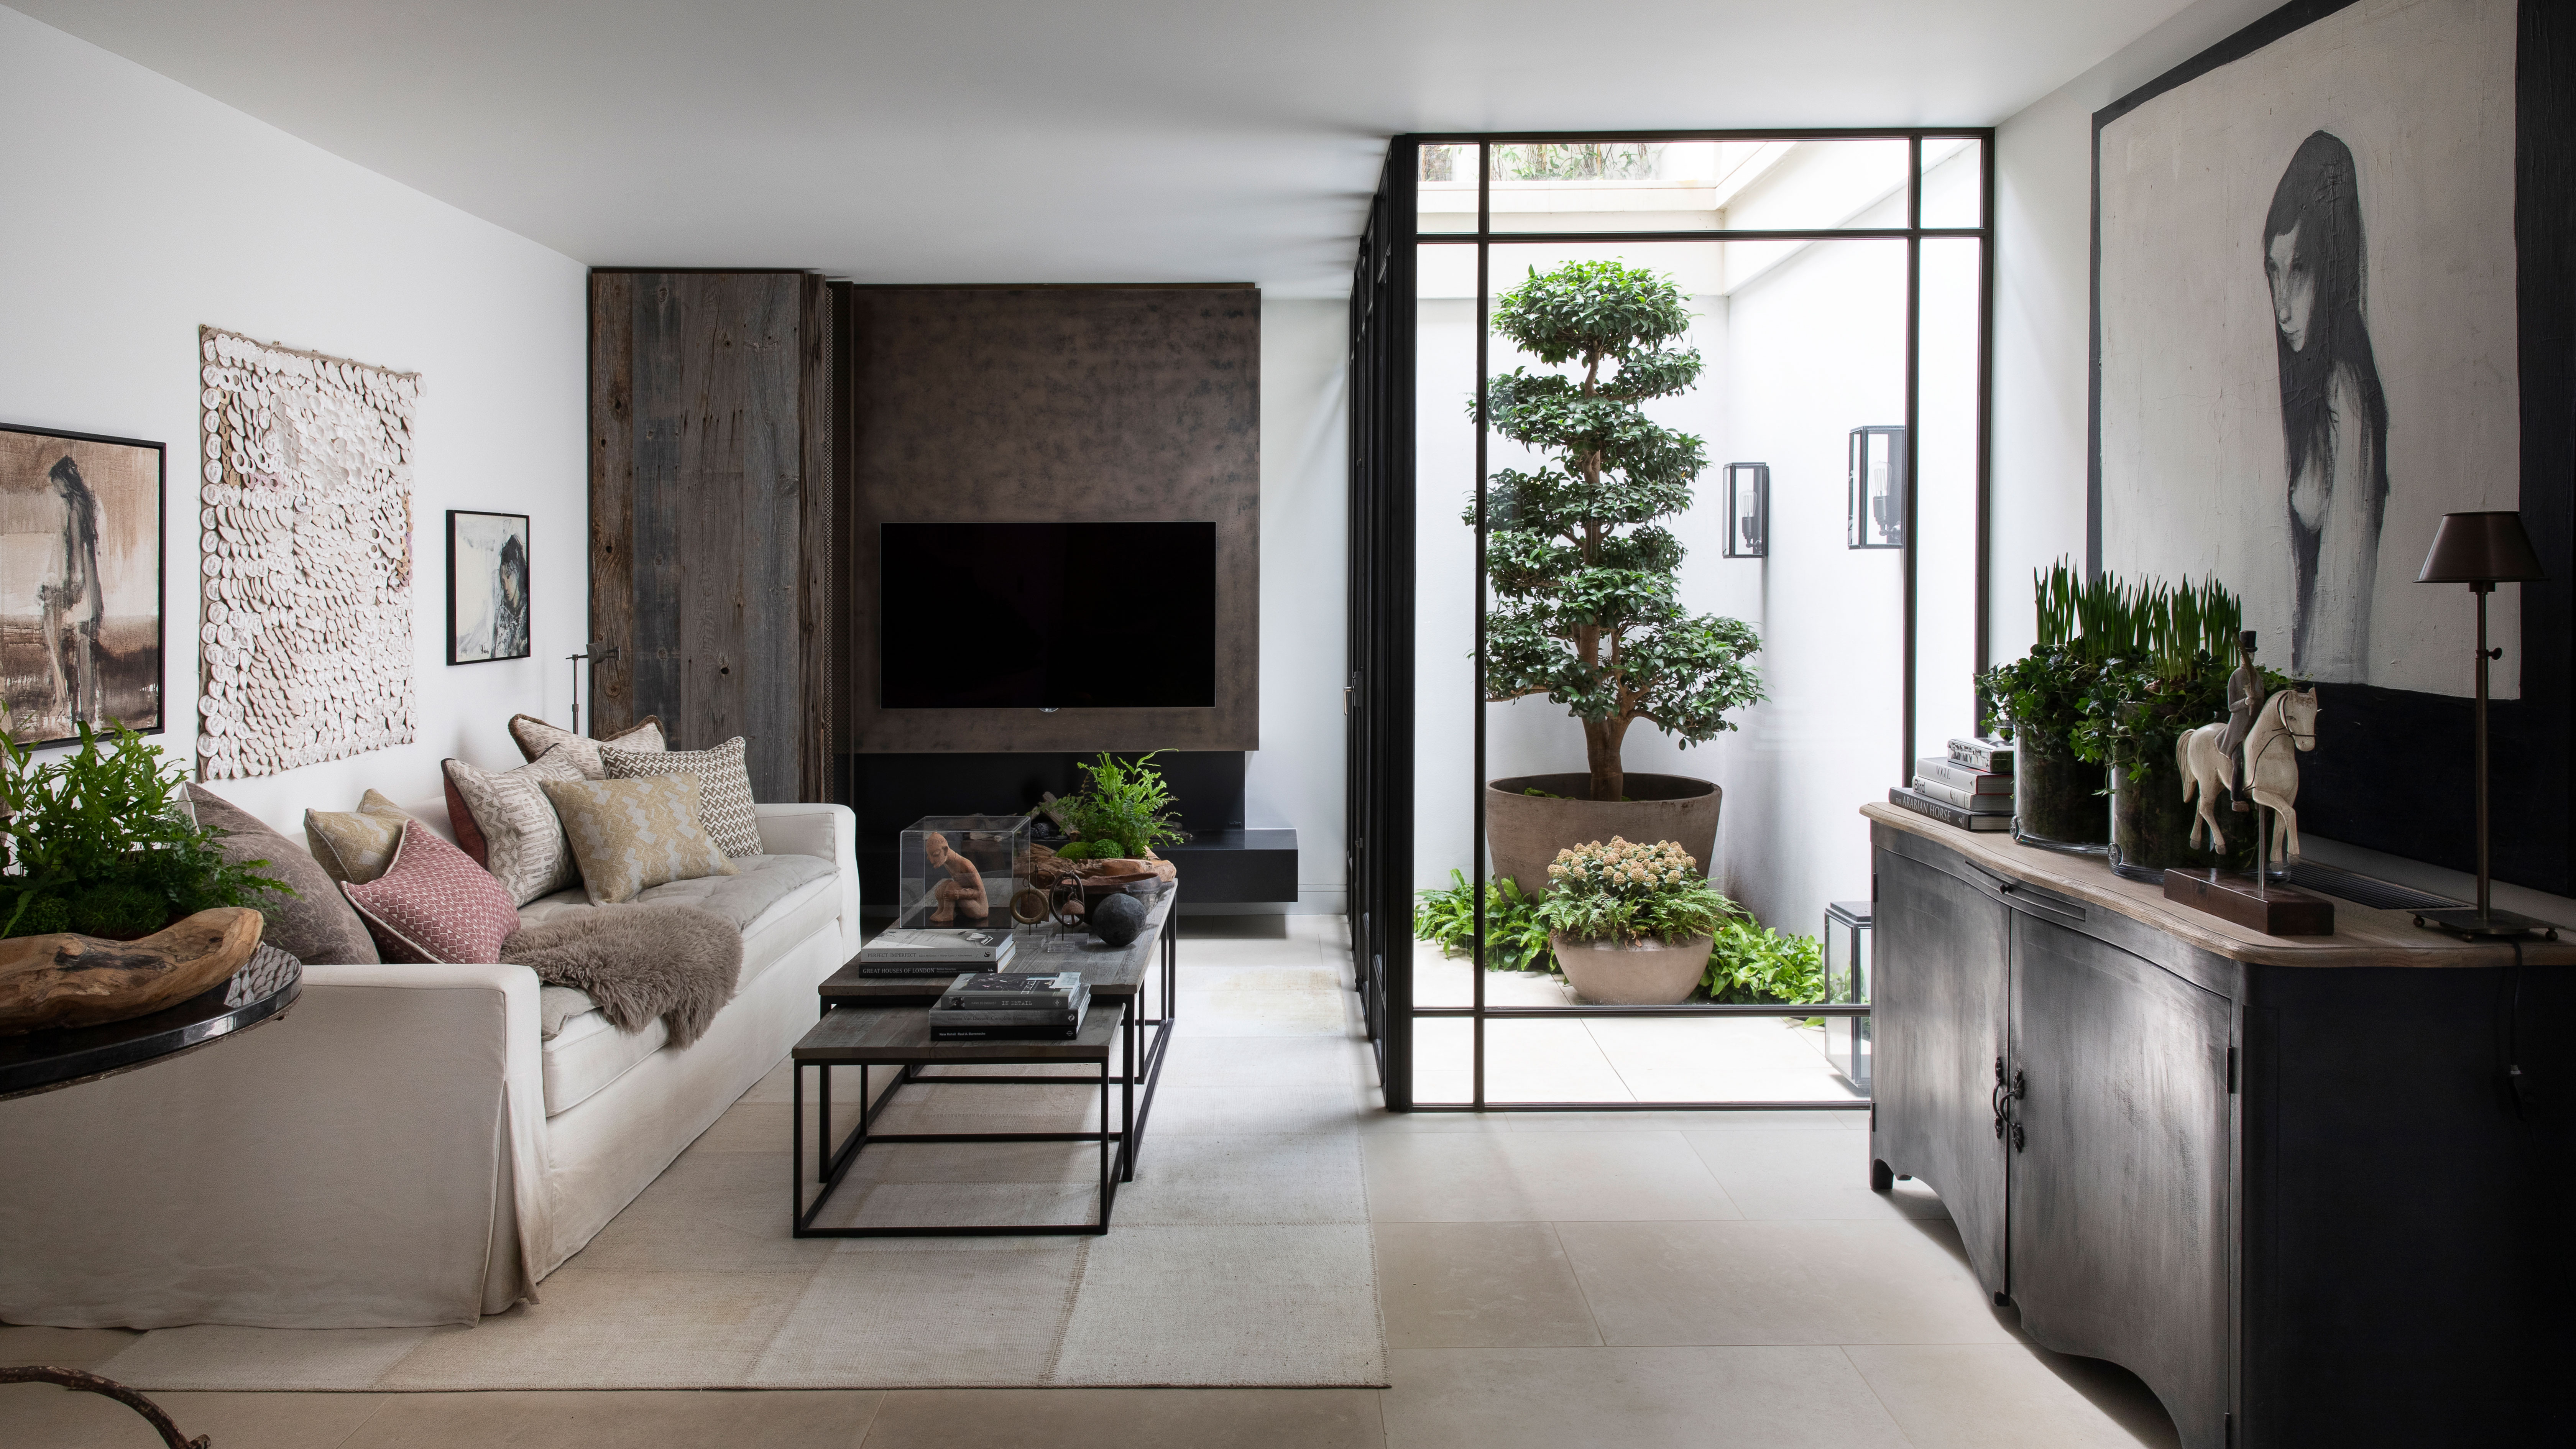 45 Living Room Ideas Inspiration For Designing Living Rooms Homes Gardens